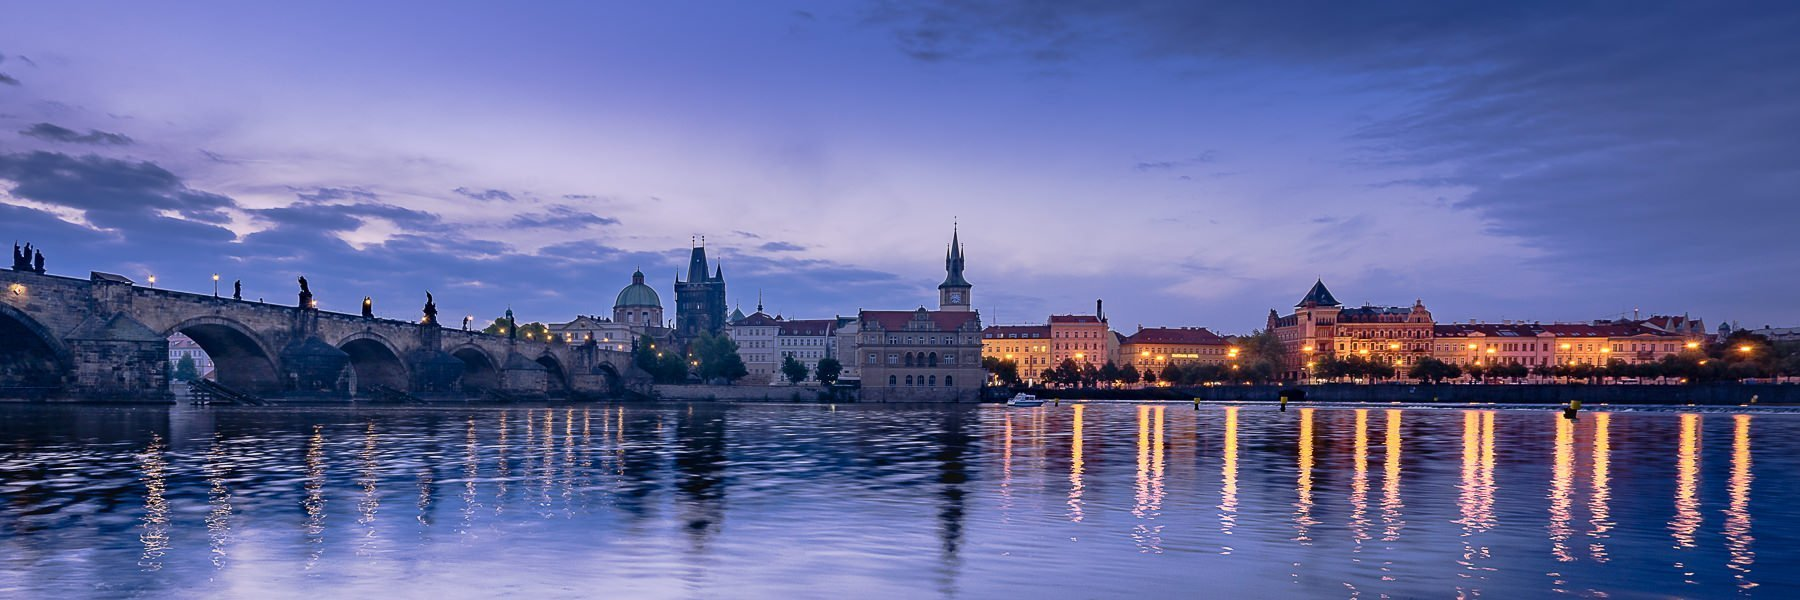 A view looking over the river towards the old town of Prague at blue hour